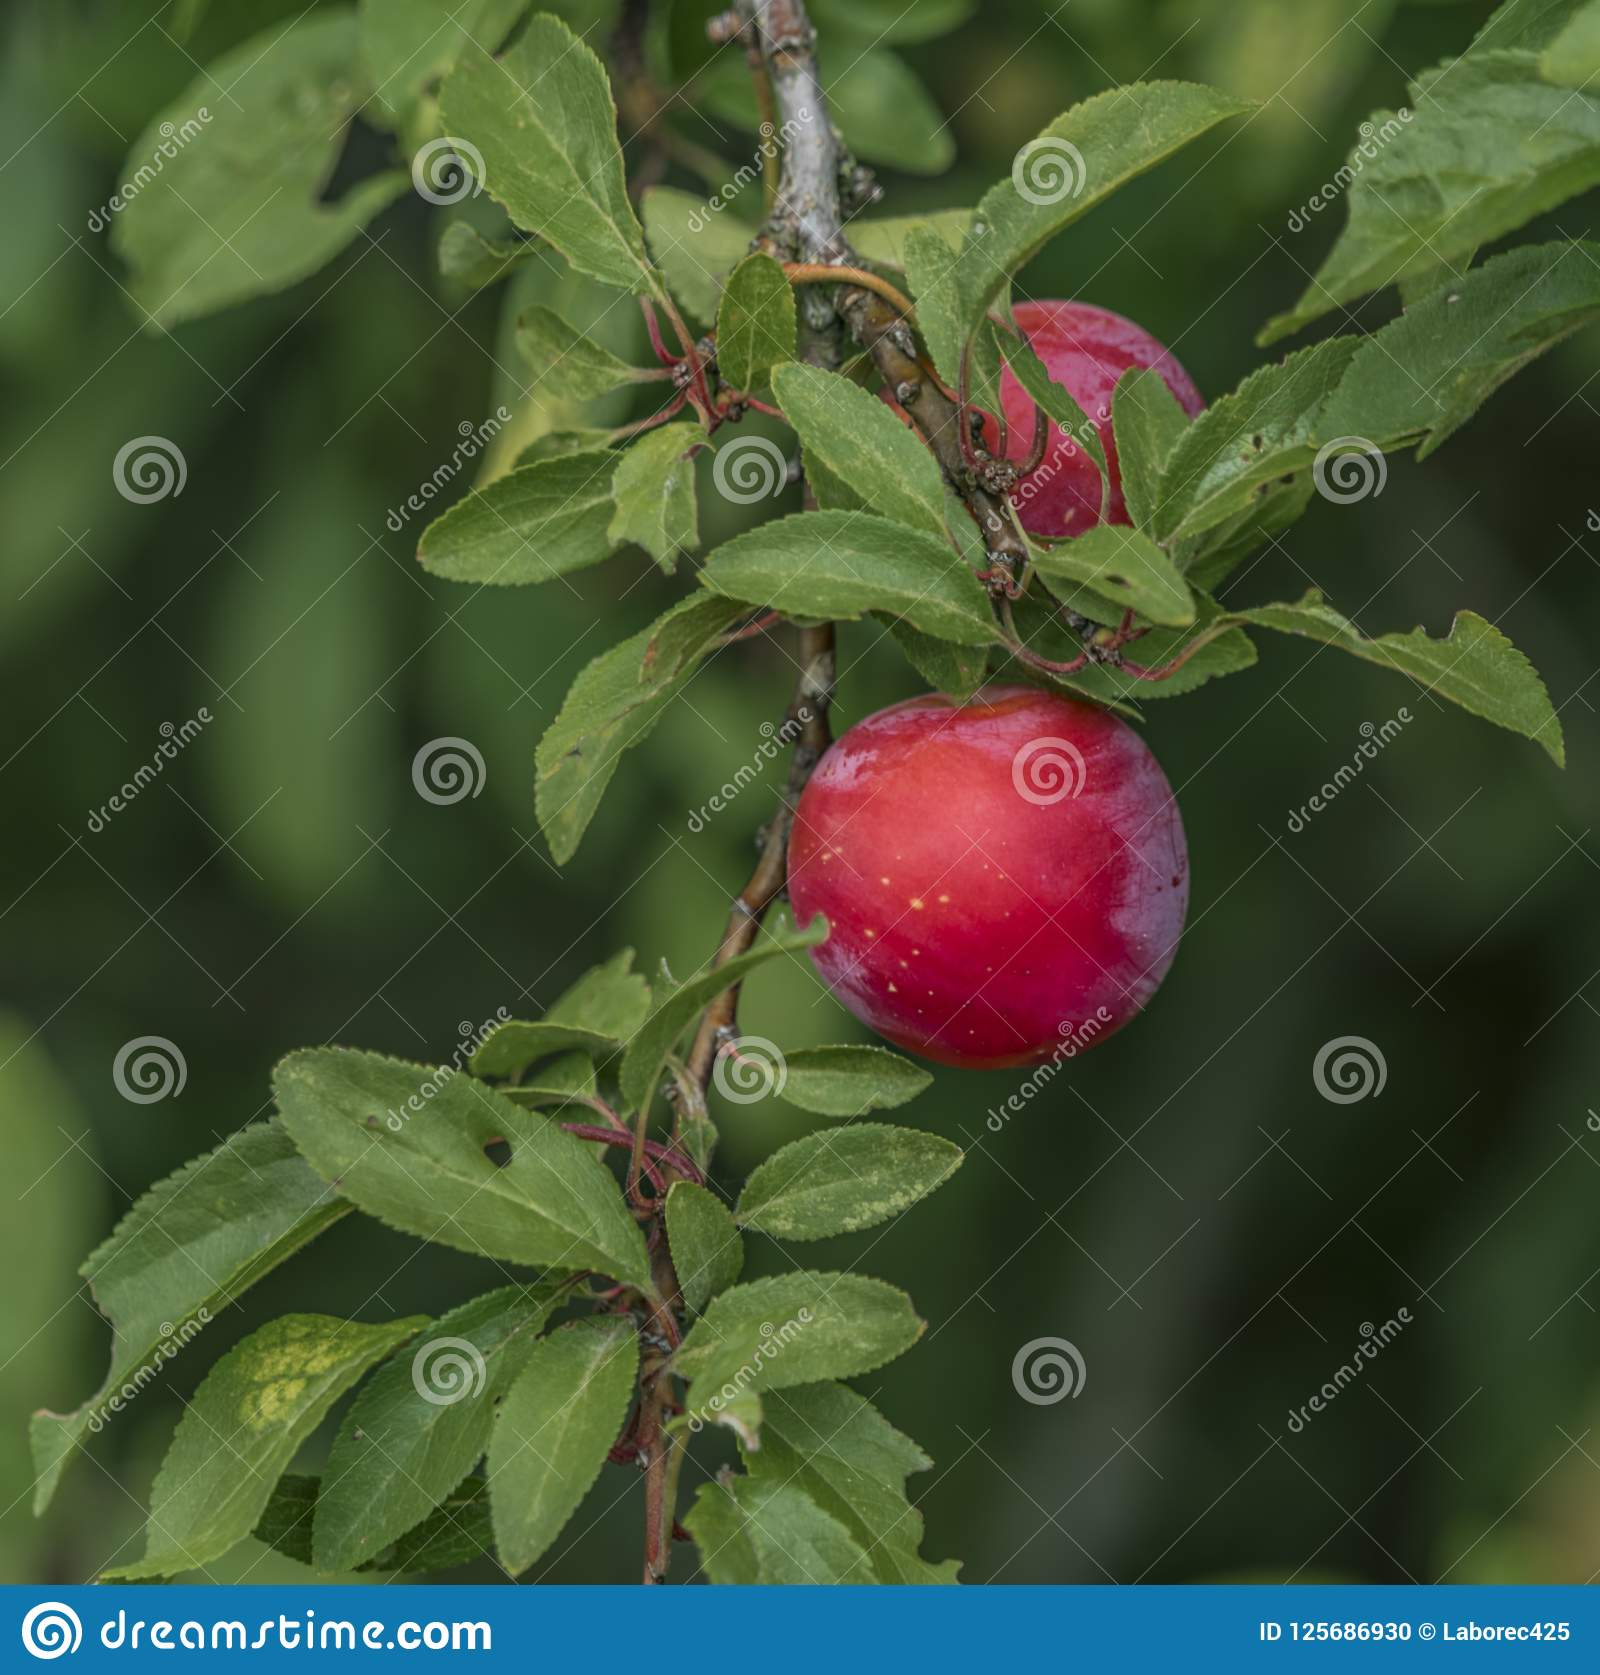 Chinese (apple plum) is a paradise tree